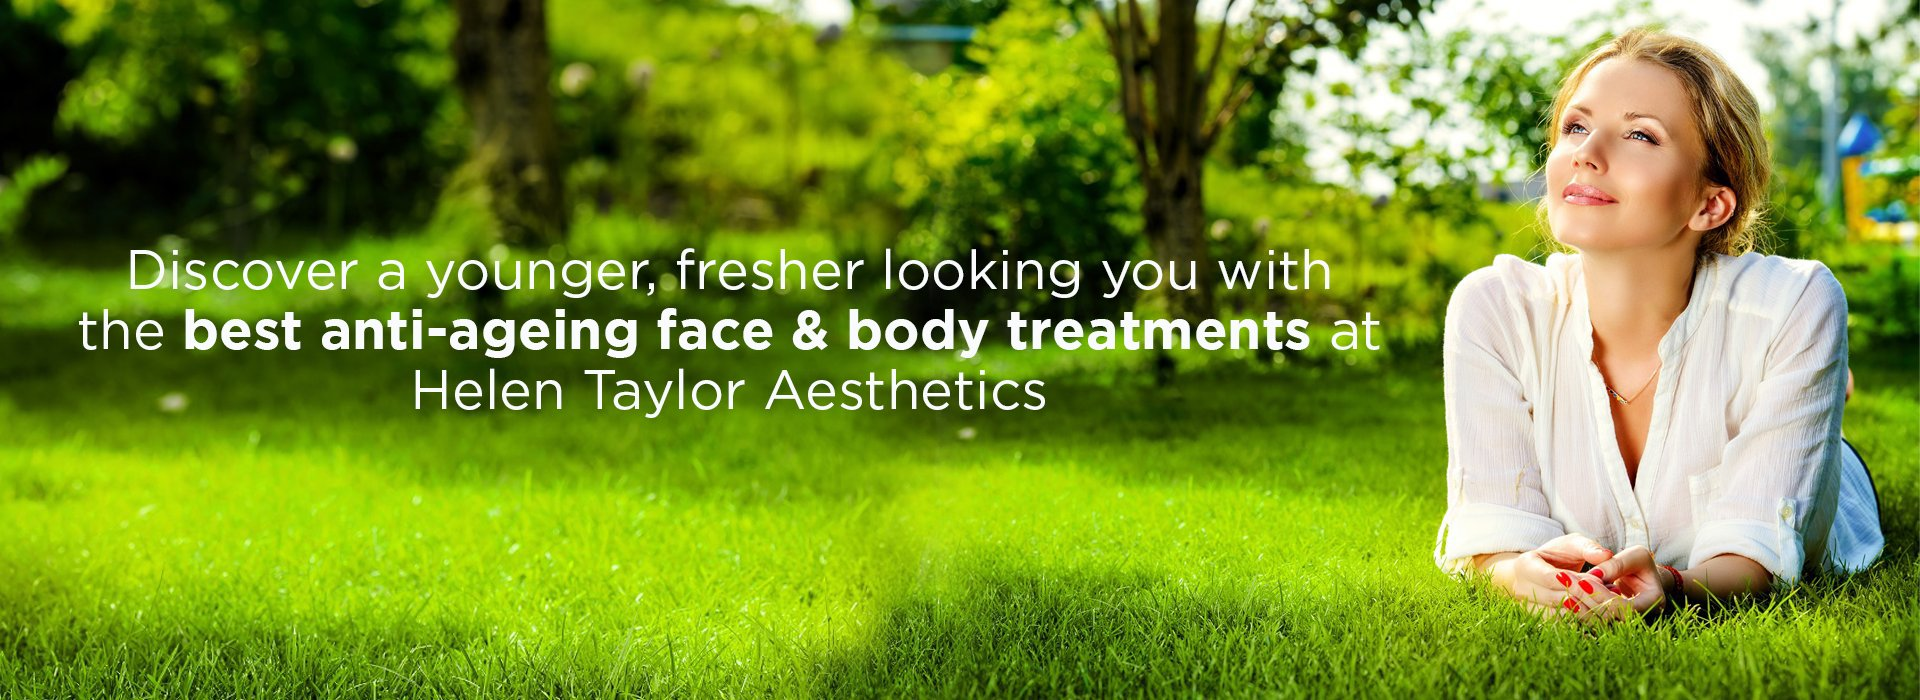 Helen Taylor Aesthetics Clinic in Rugby, Warwickshire for Anti-Ageing Treatments, Dermal Fillers and Fat Freezing Treatments